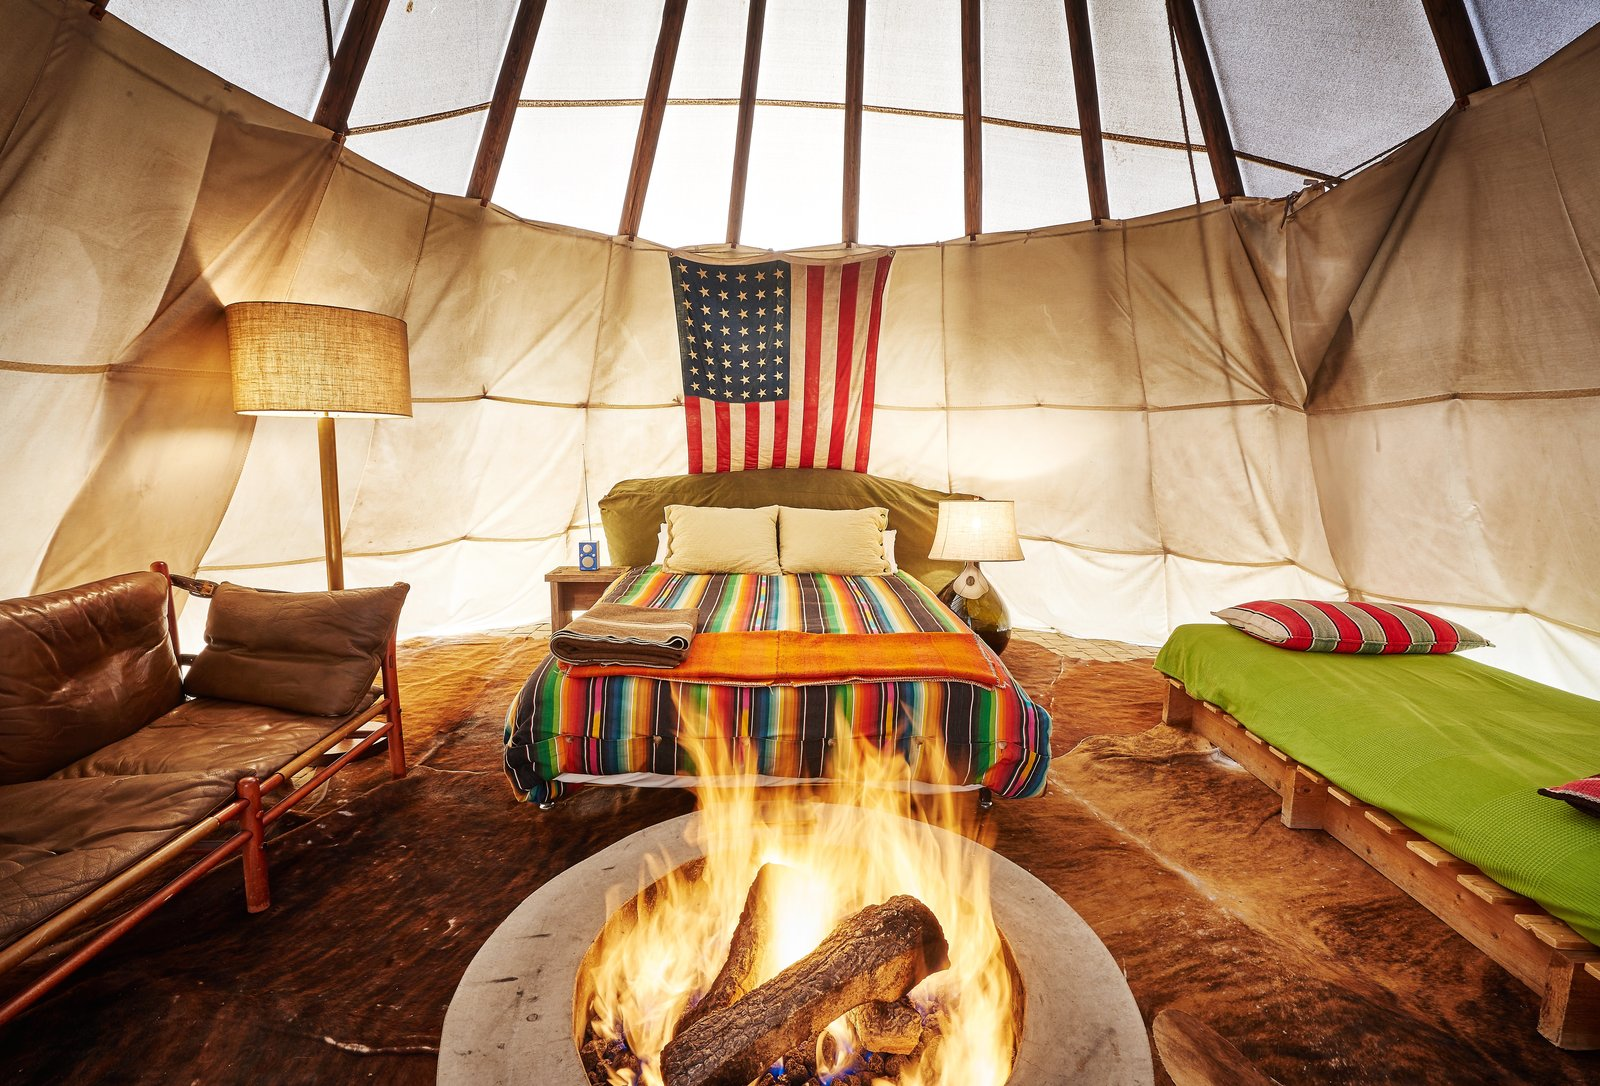 Bedroom, Bed, Lamps, Floor Lighting, Night Stands, Plywood Floor, Bench, and Table Lighting There are also five teepees on the site, each equipped with a fire pit.    Photo 10 of 12 in Let Your Creativity Soar at This Eclectic Hotel With Tents, Tepees, Yurts, and Trailers